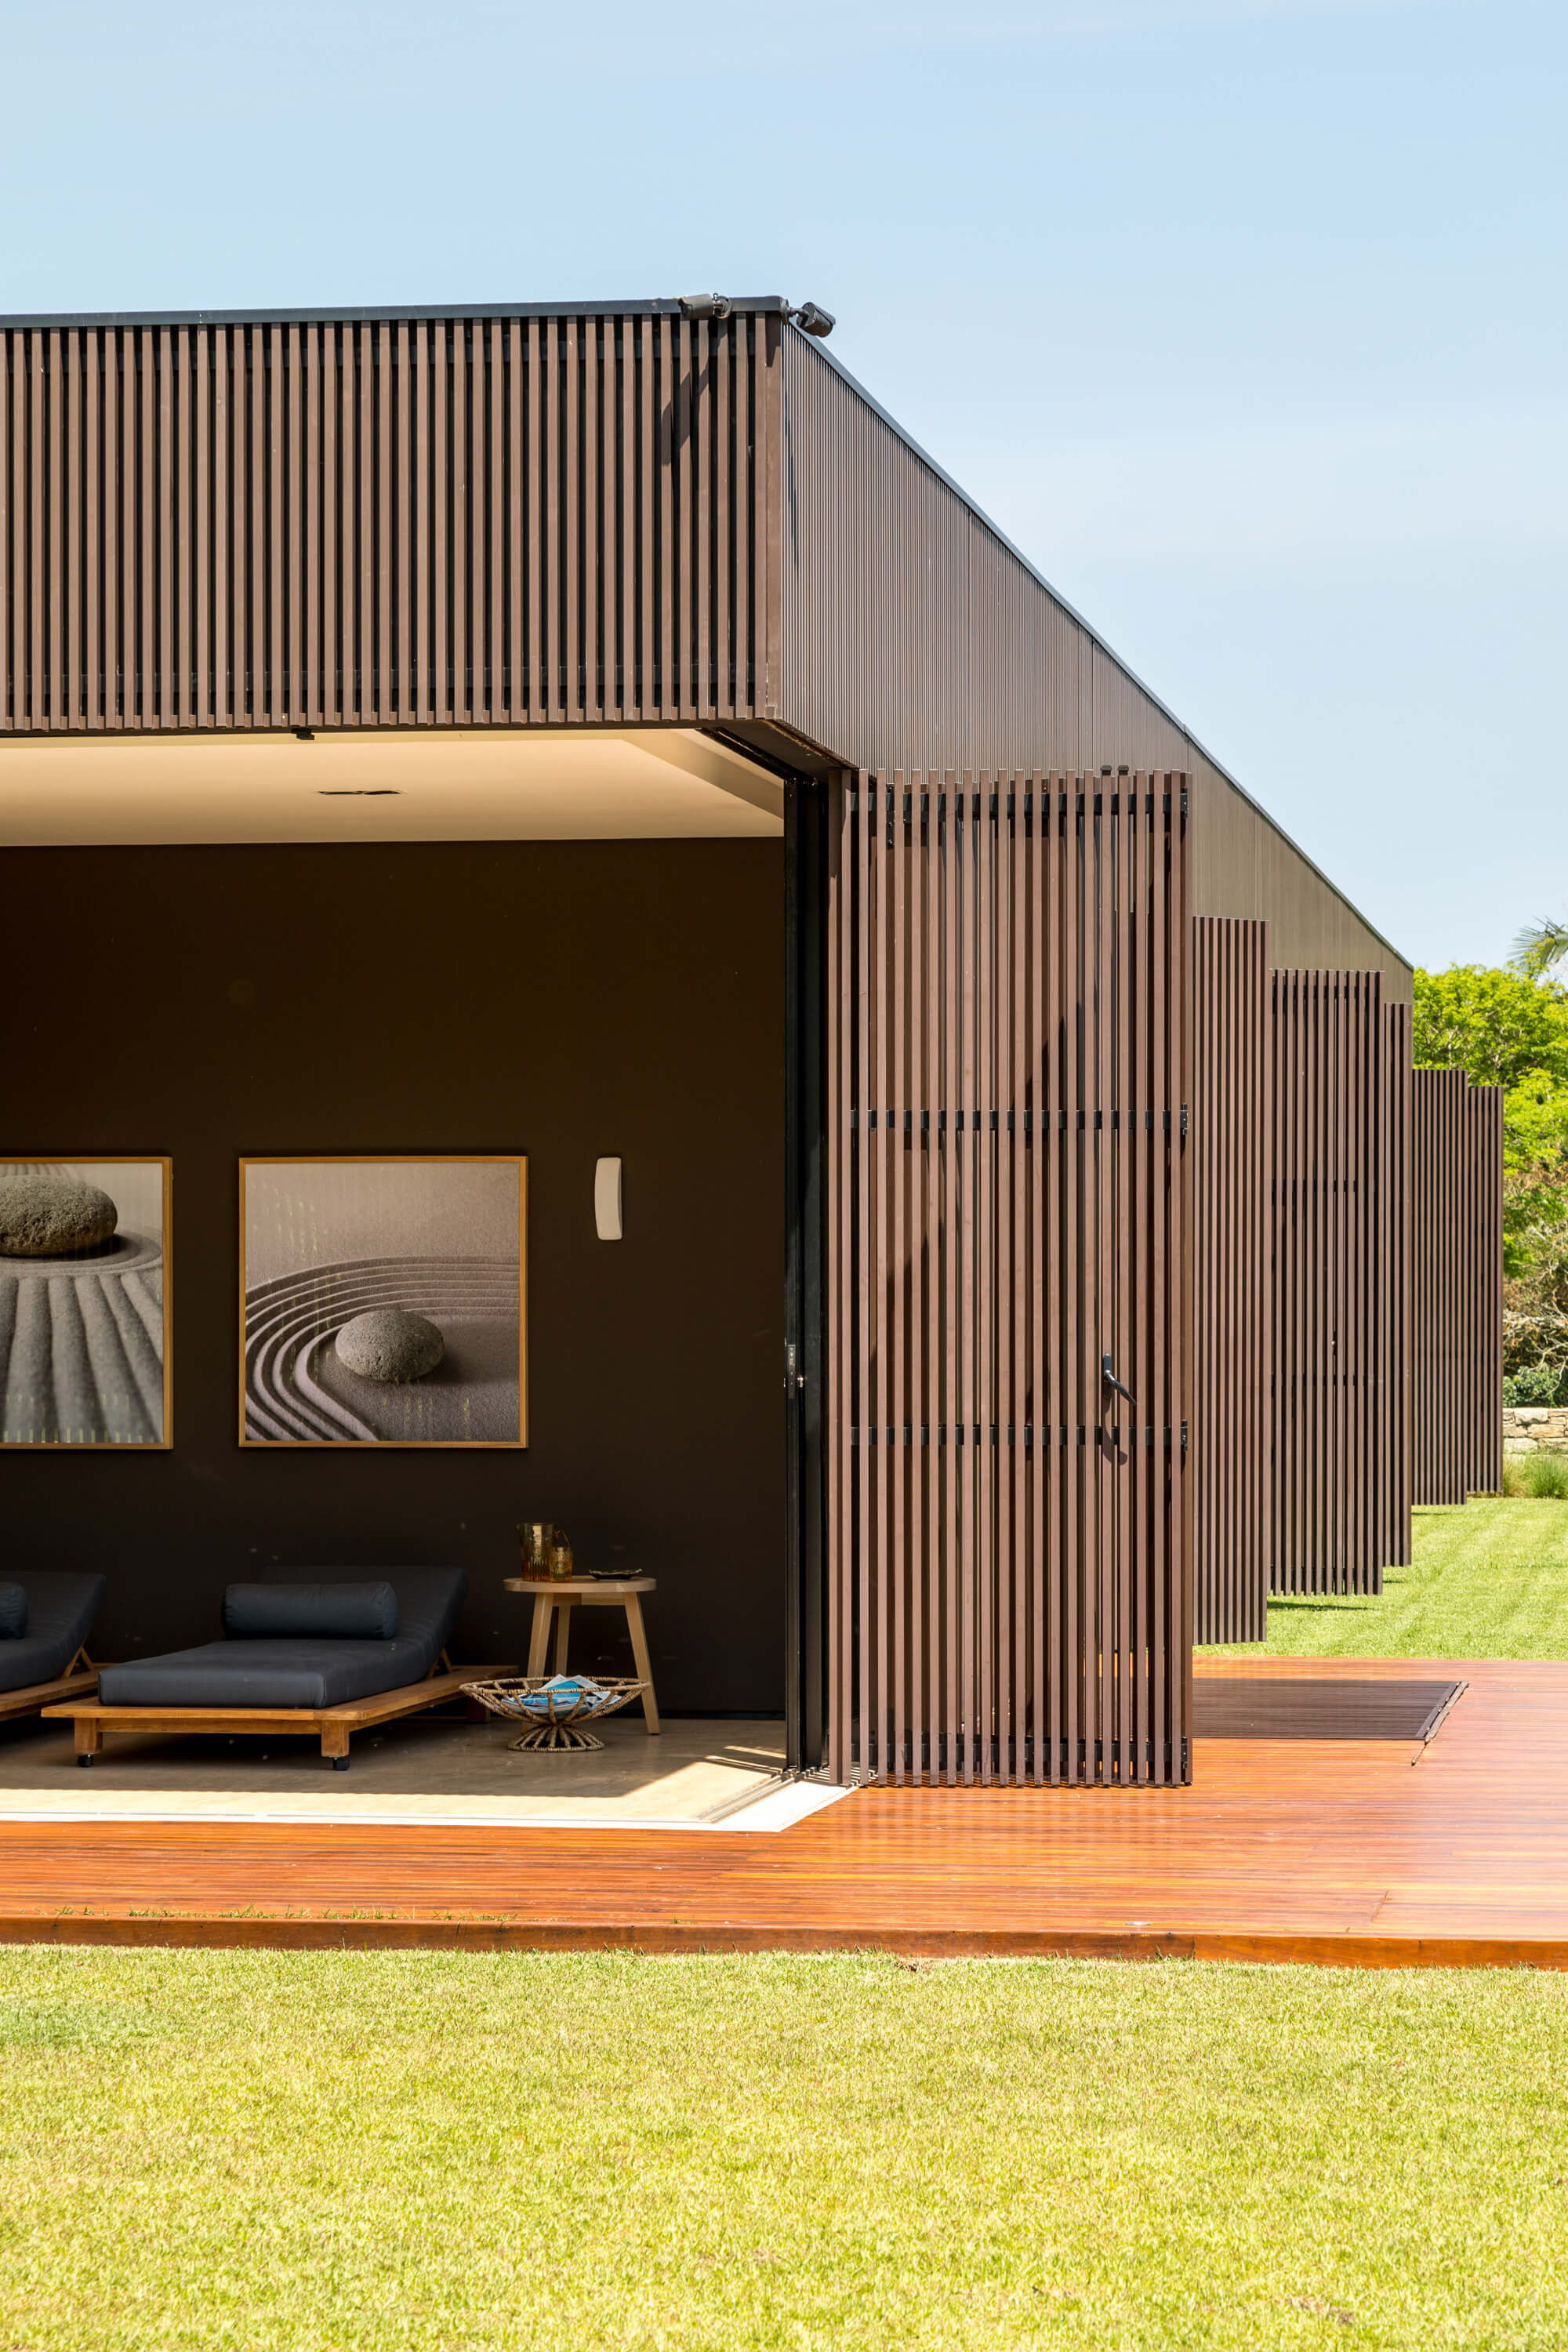 Tunnel House by Consuelo Jorge Arquitetos